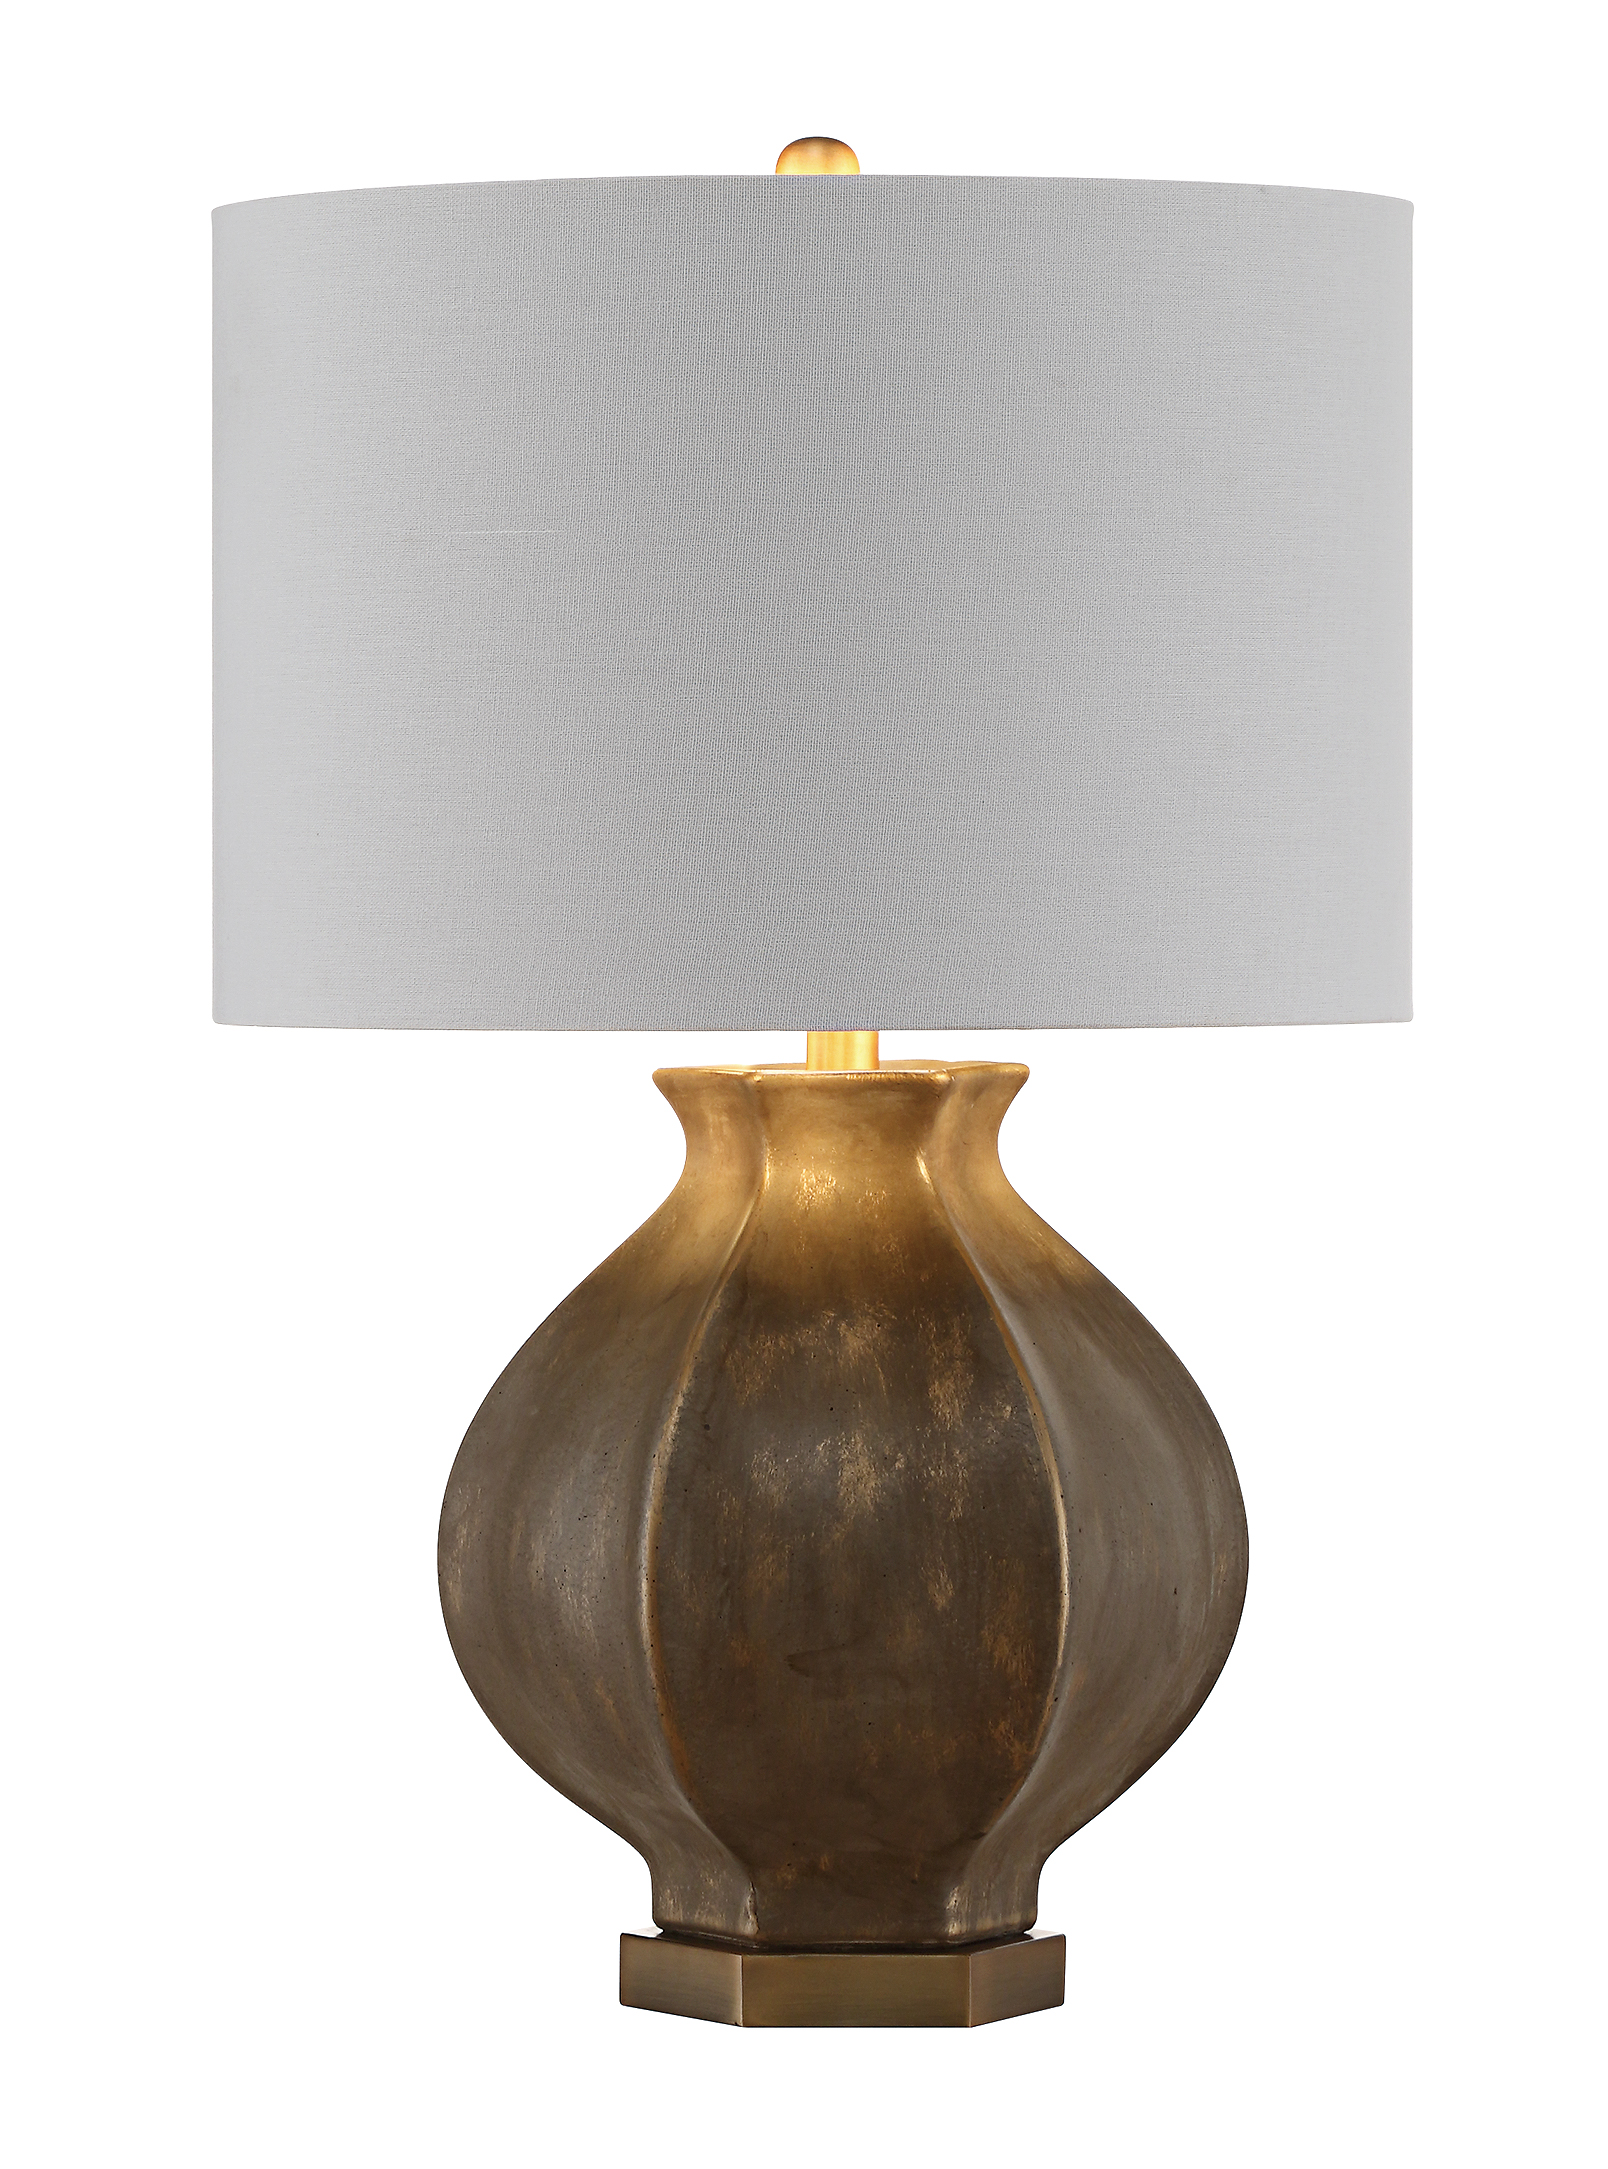 NEW Pair of Burnished Urn Lamps